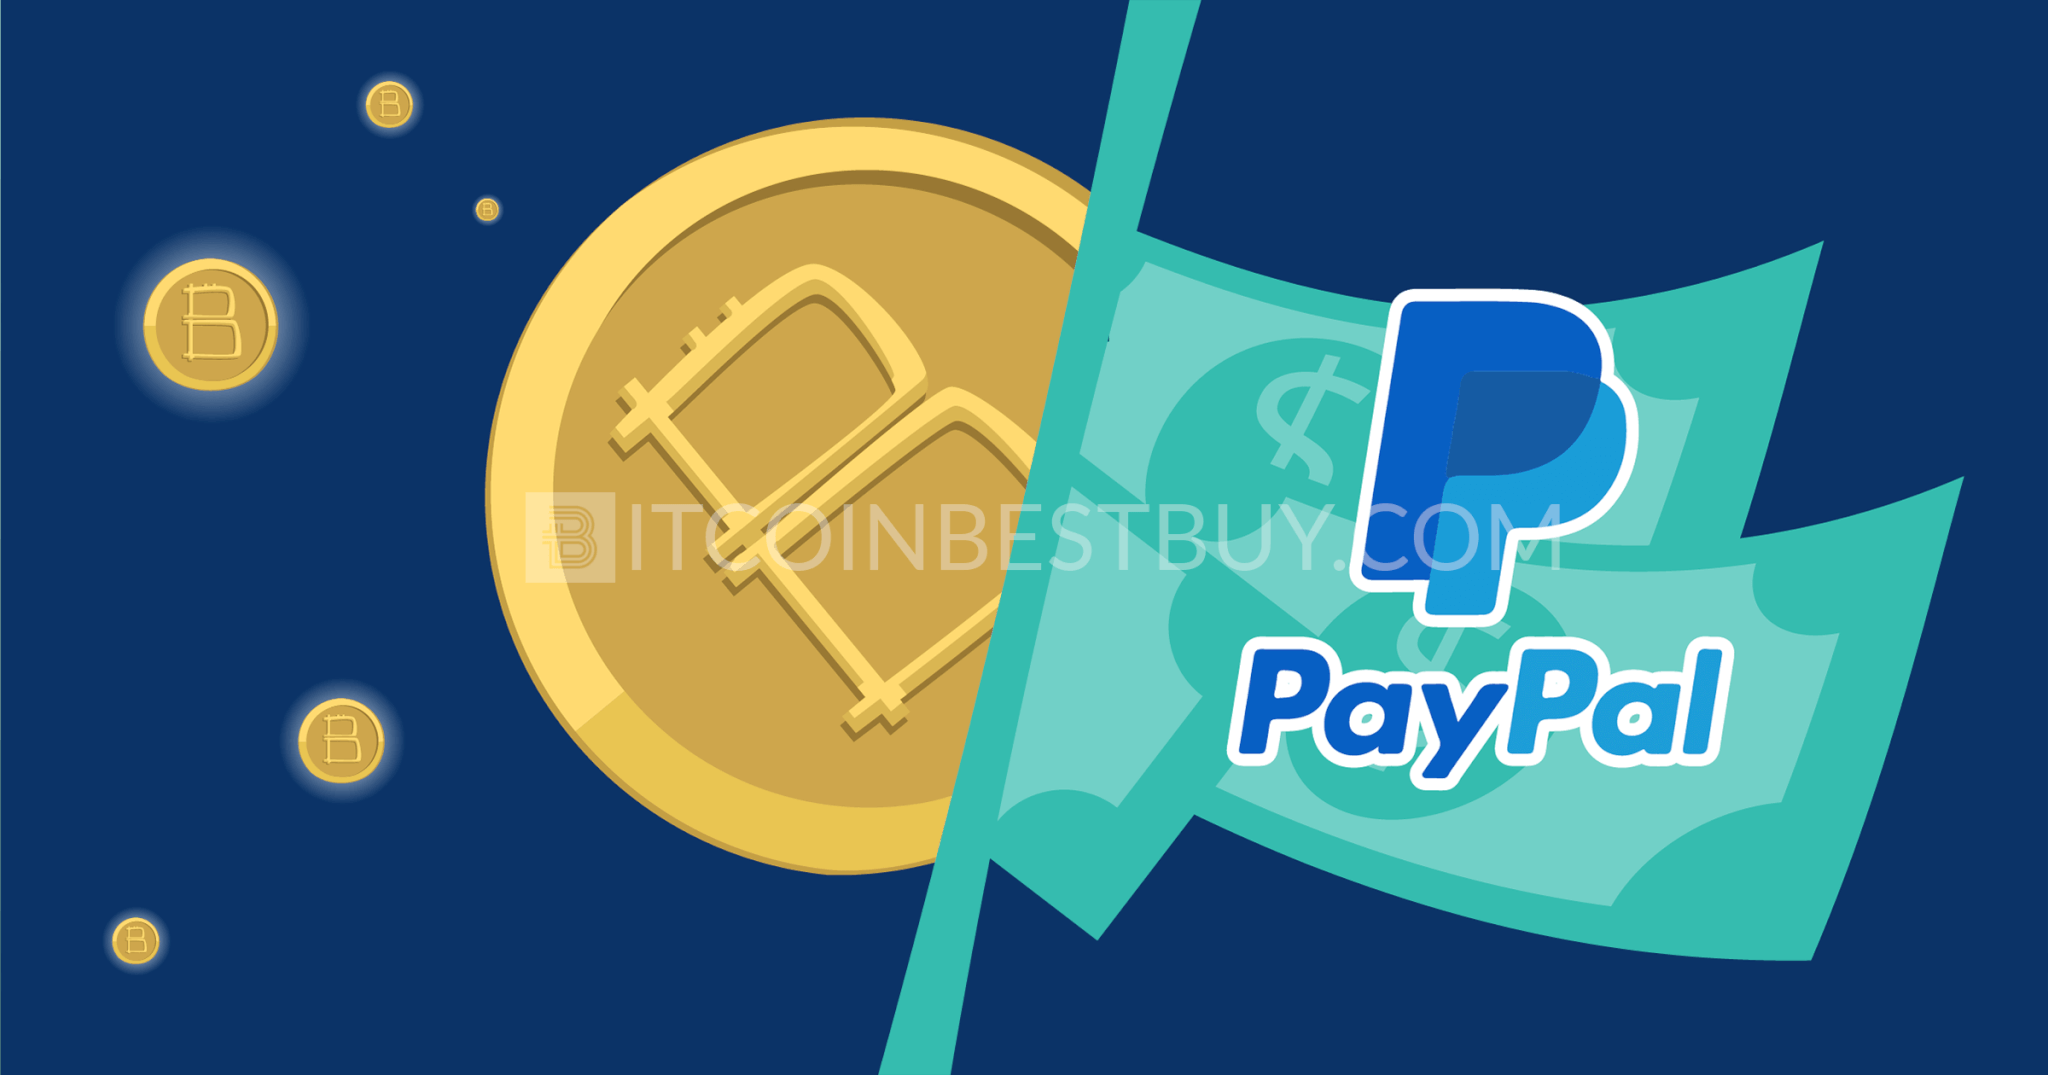 Sell bitcoins uk paypal contact match first deposit betting sites